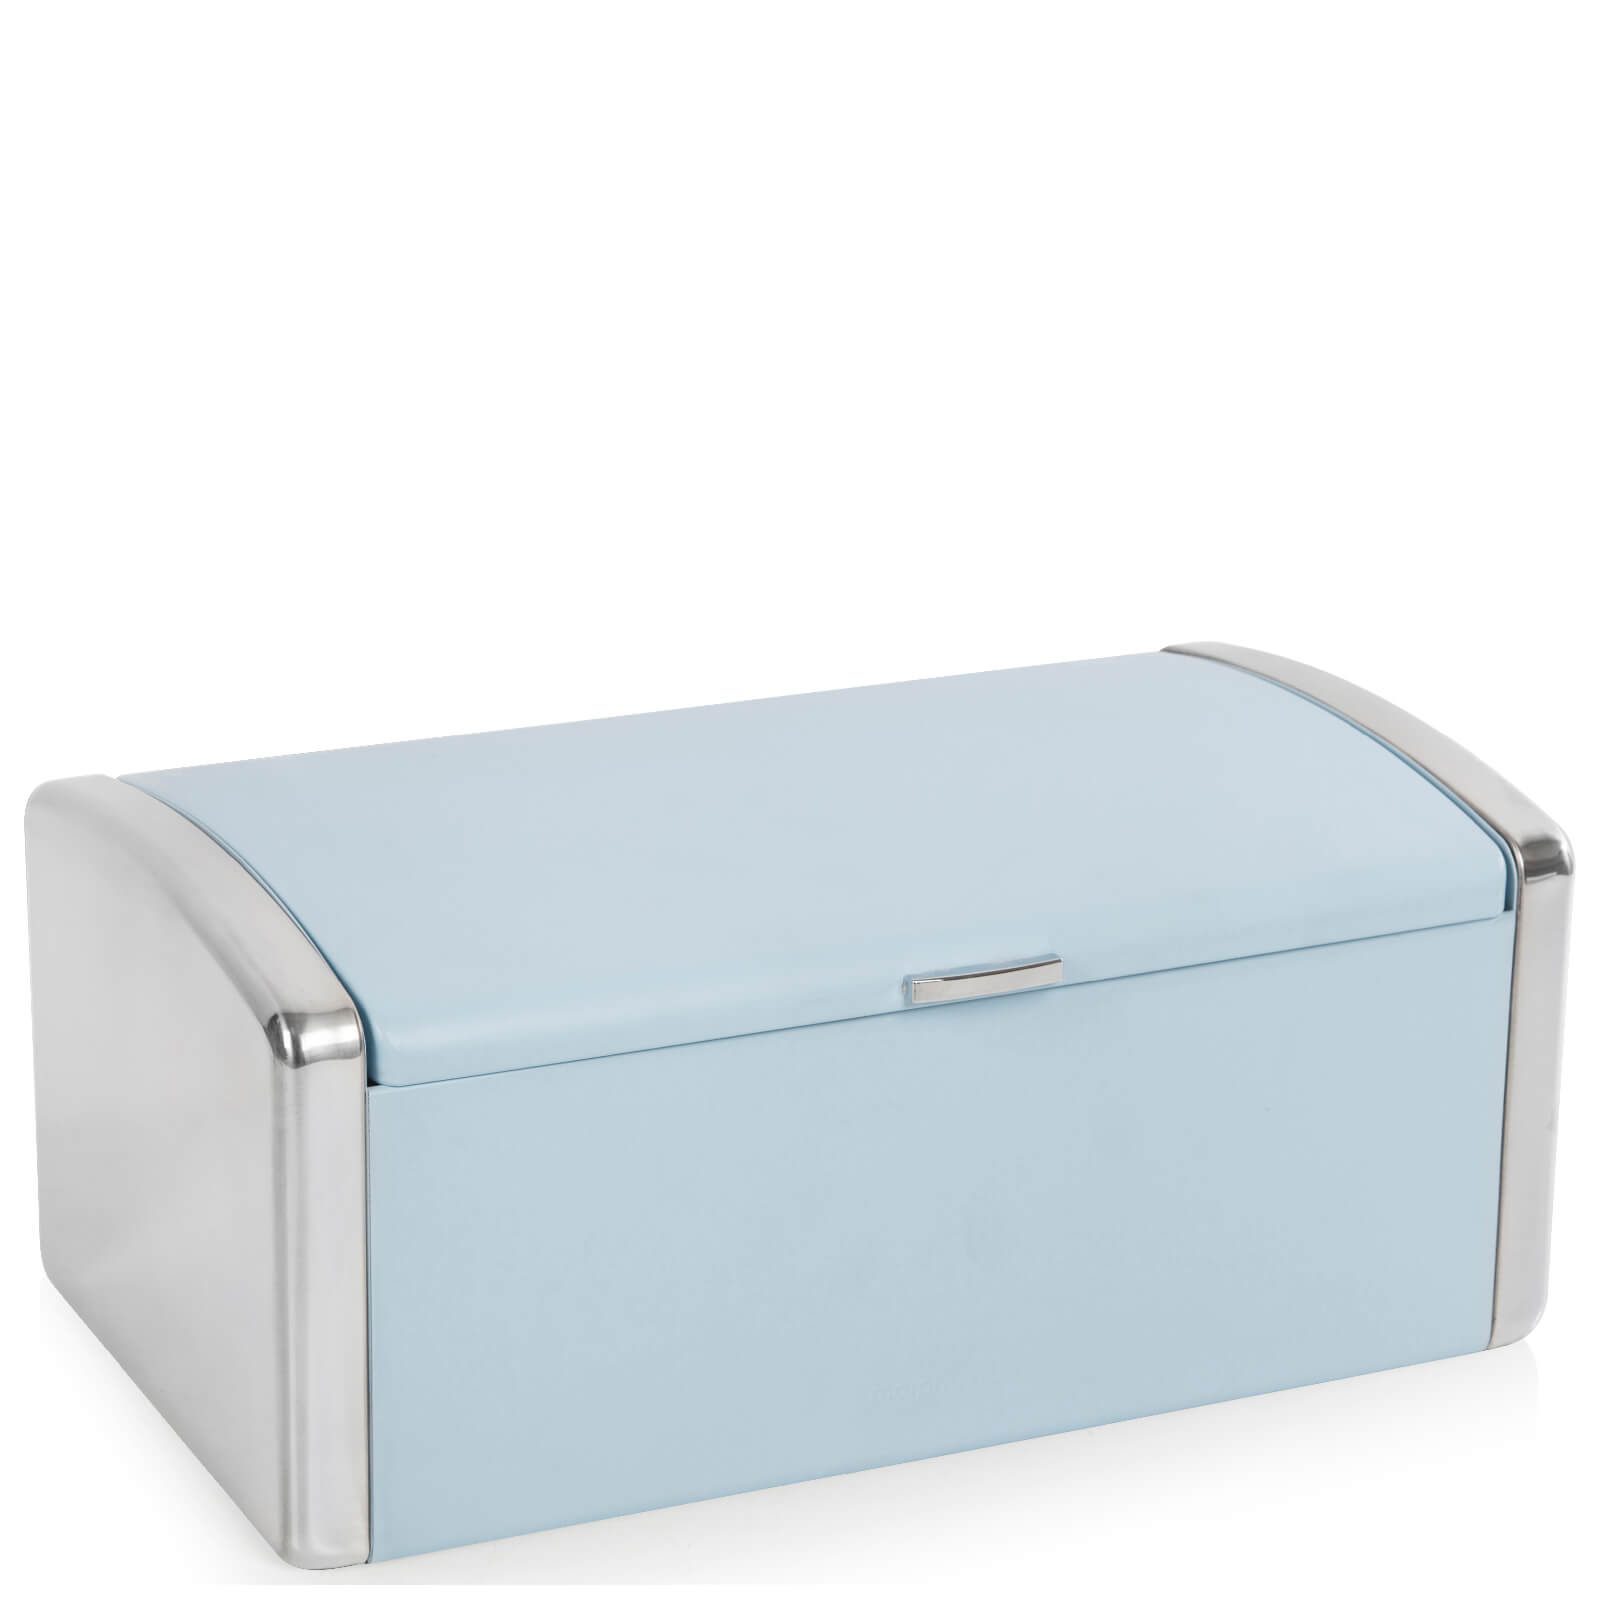 Morphy Richards 974006 Accents Bread Bin - Blue